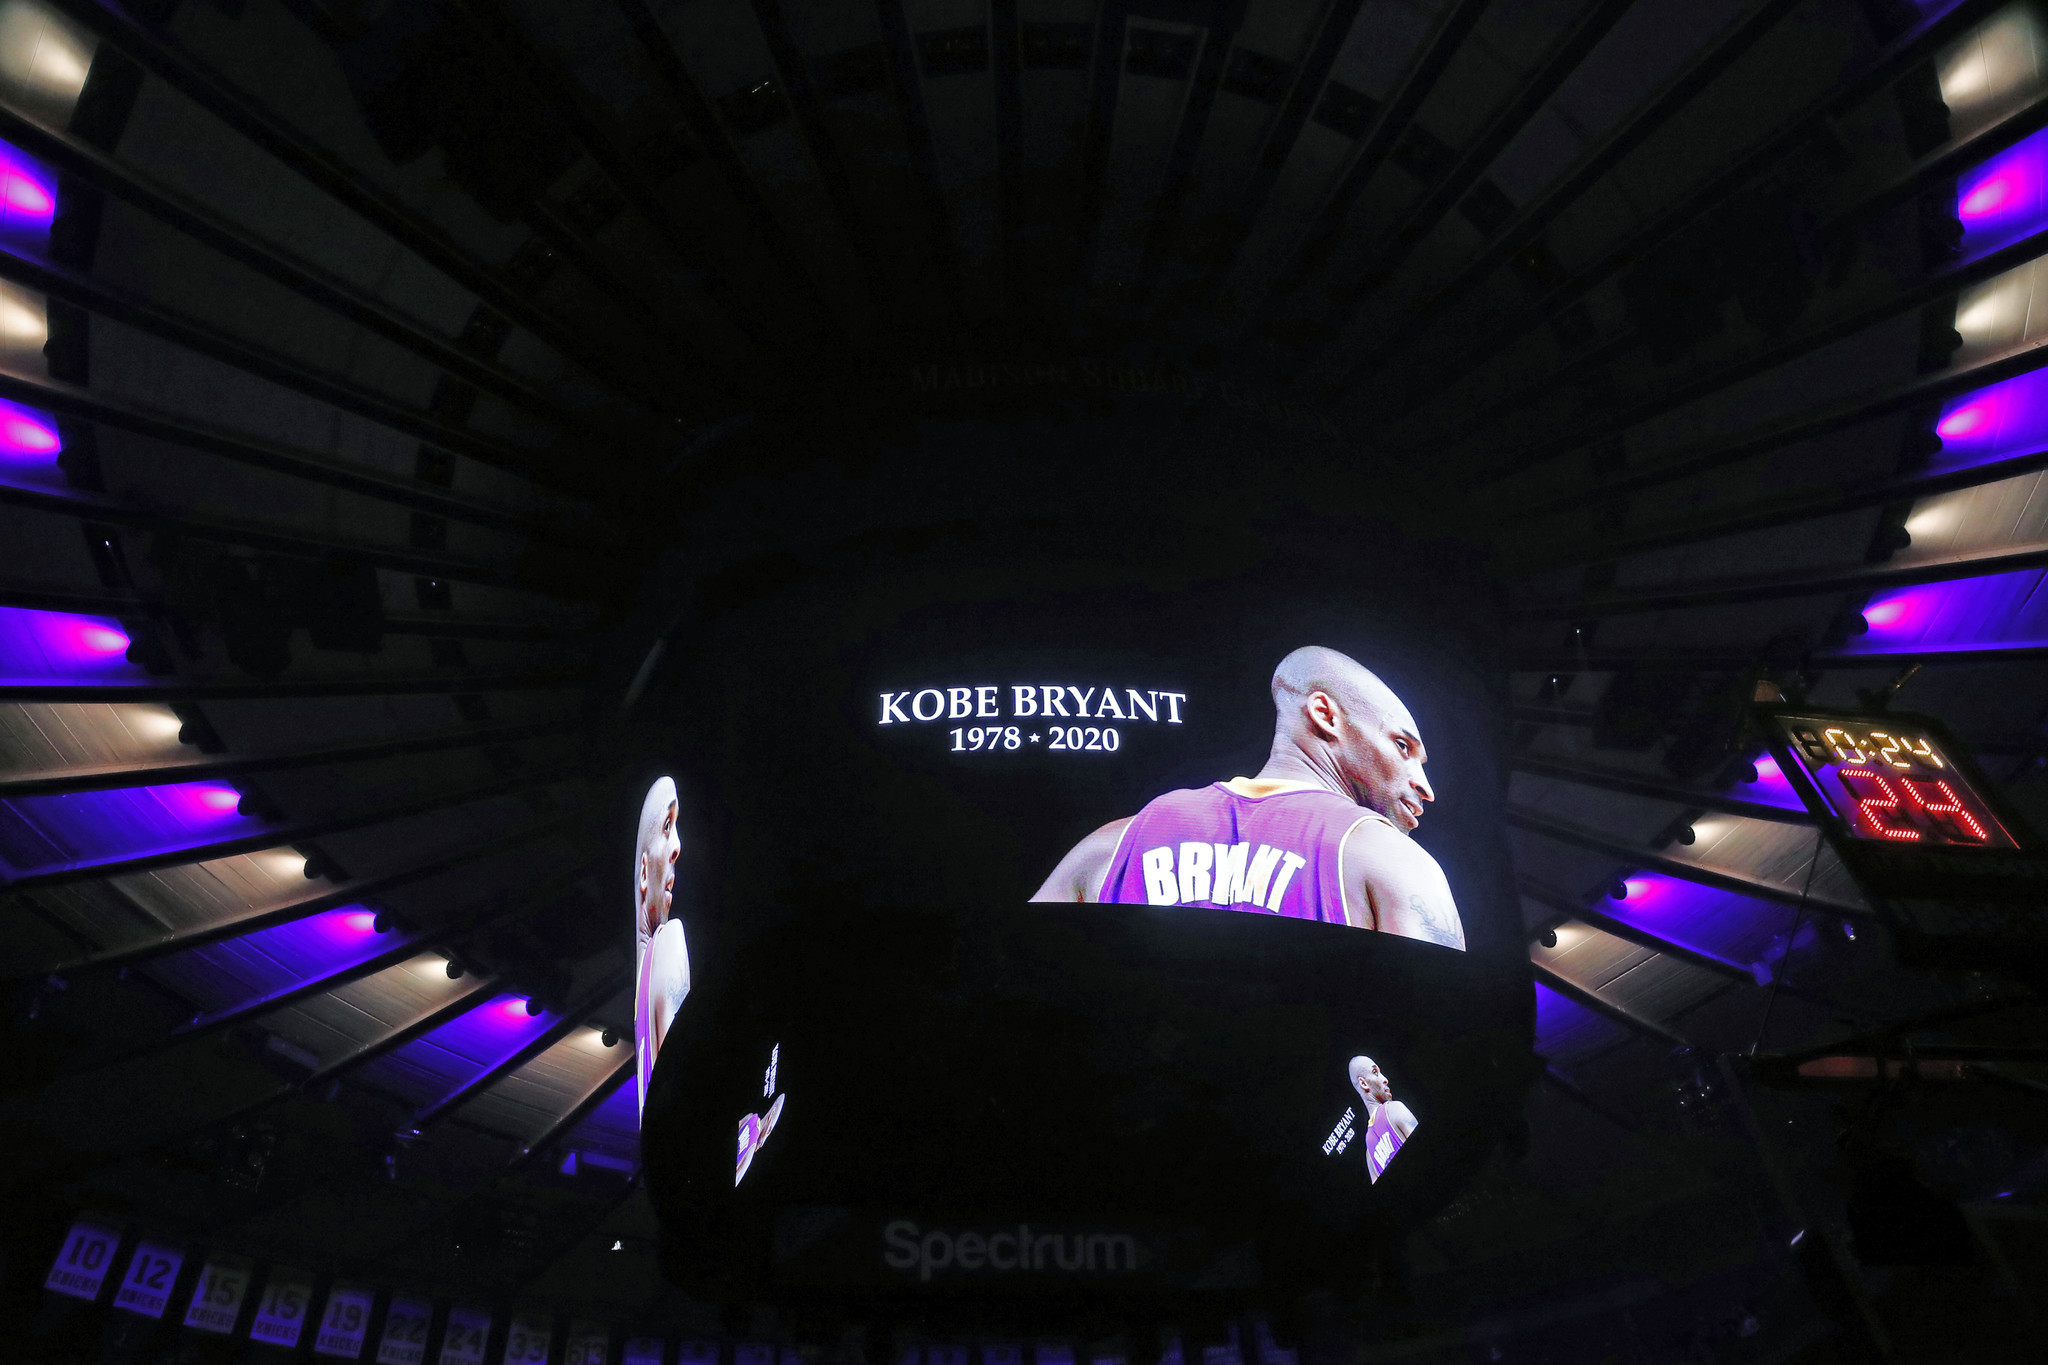 Knicks players stunned by death of Kobe Bryant